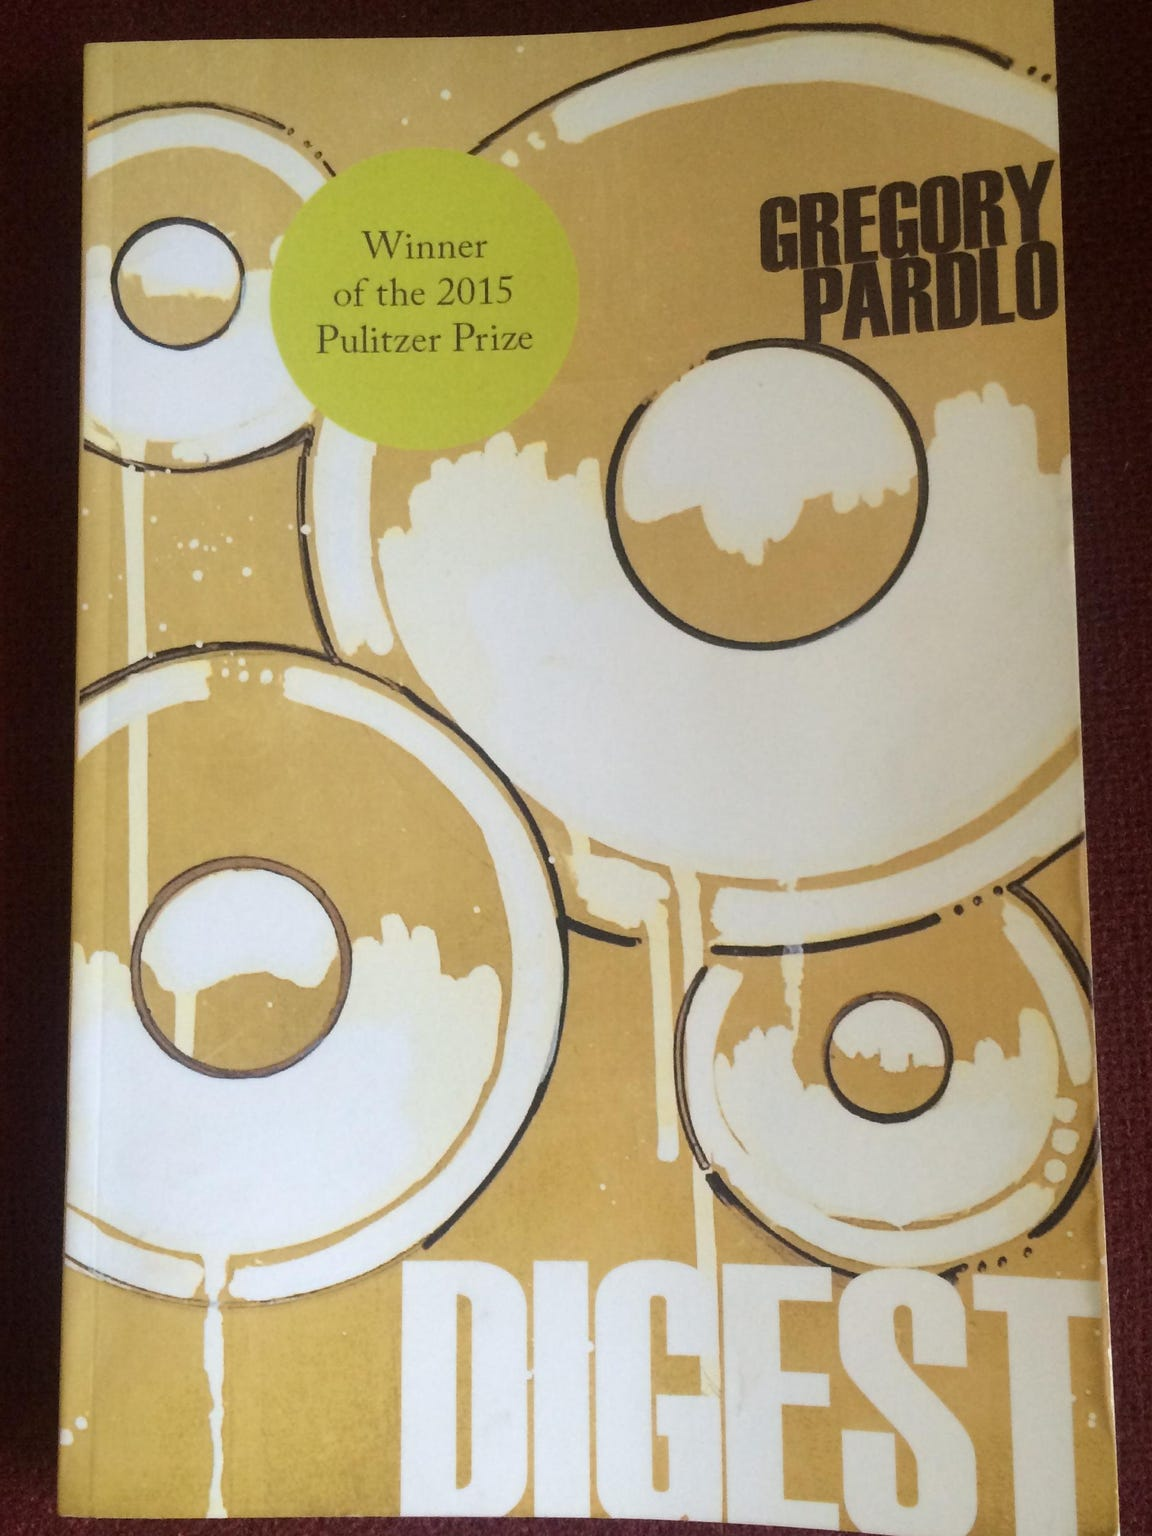 'Digest' by Gregory Pardlo was rejected by multiple